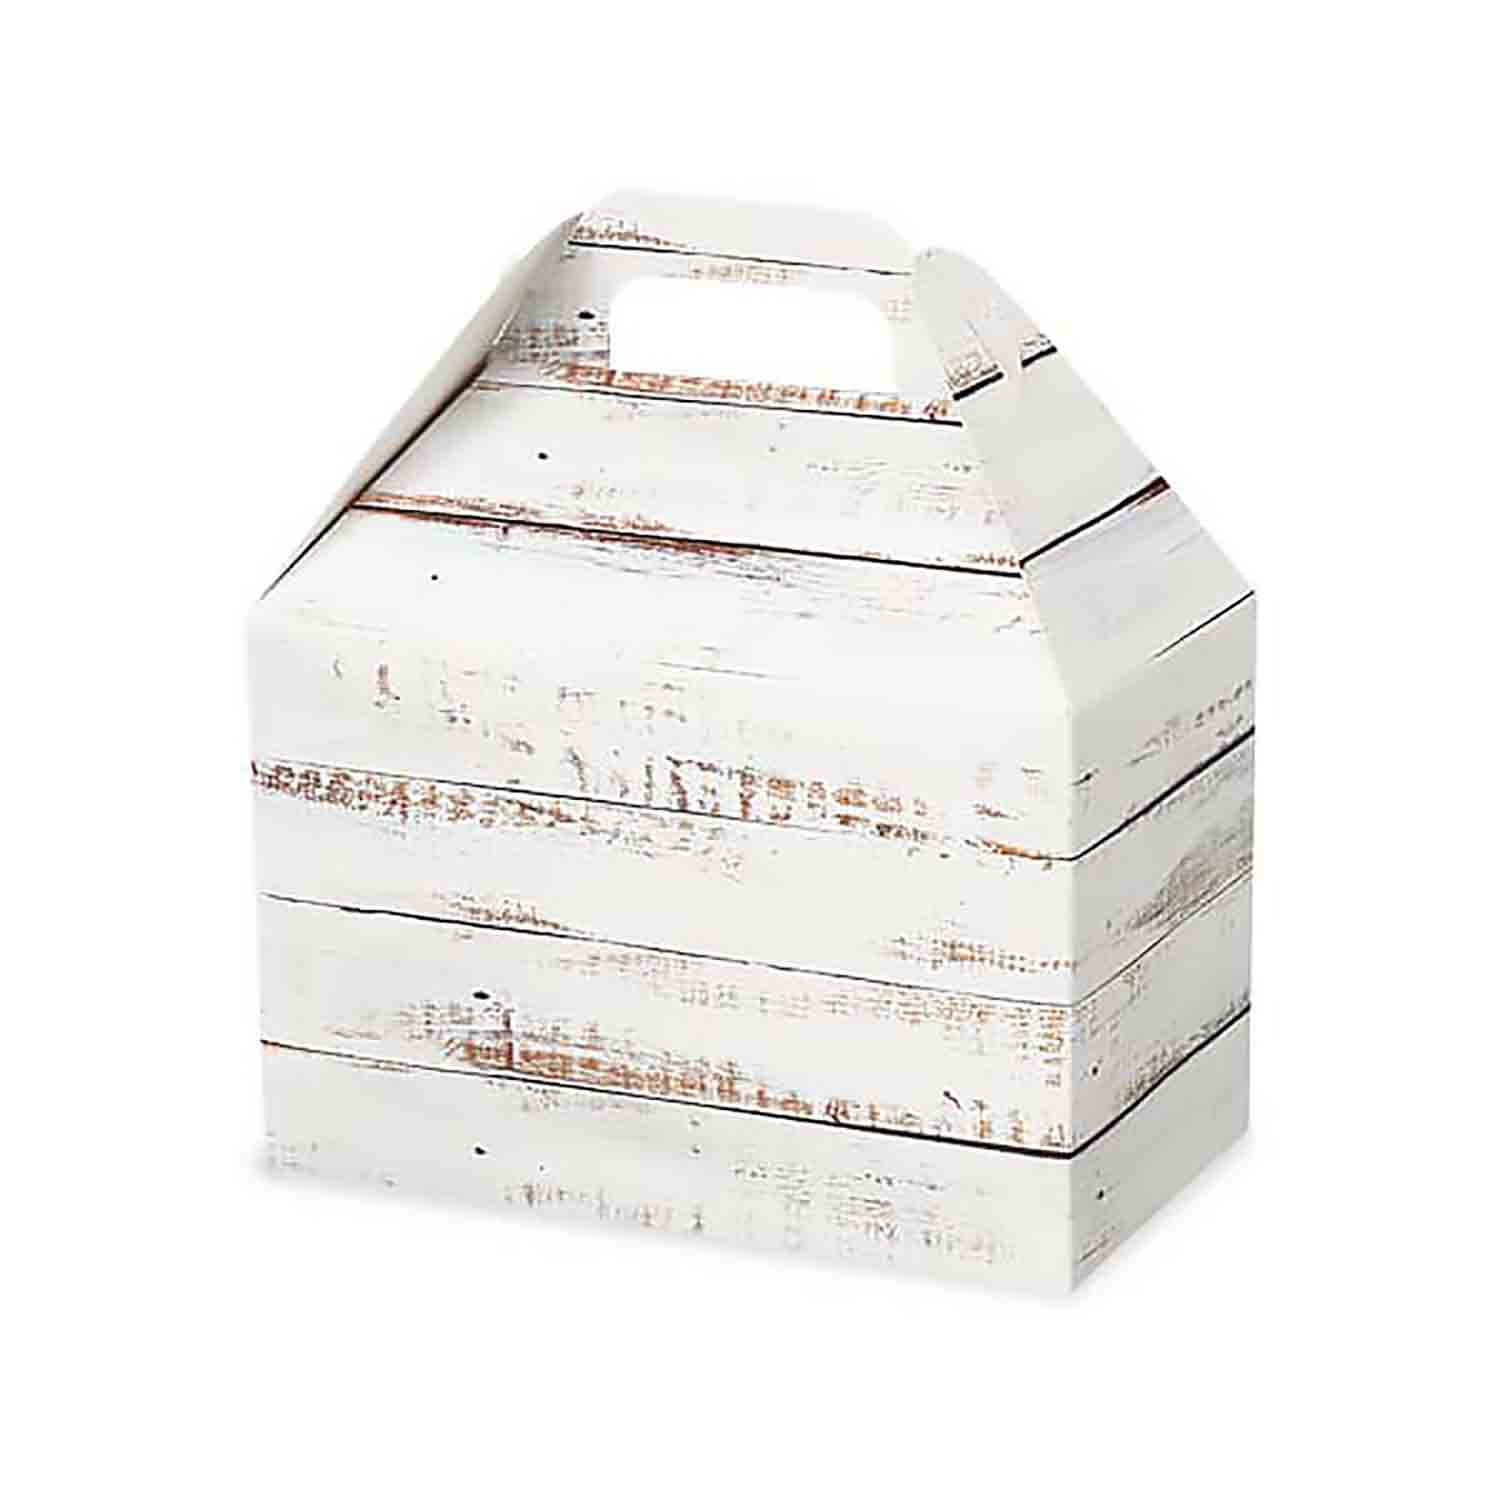 4 lb. Distressed Wood Gable Box